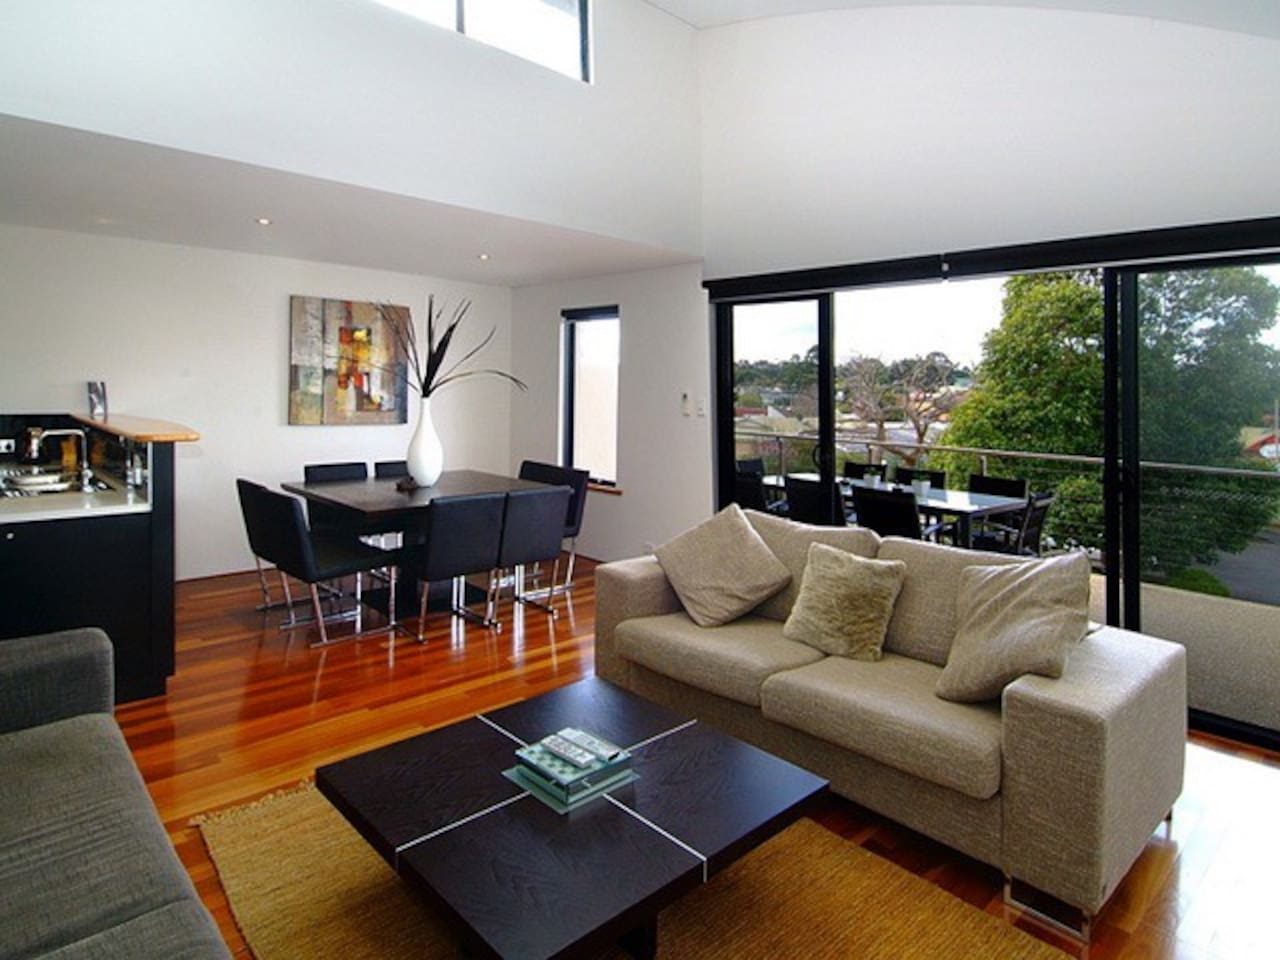 Open plan living with light filled space